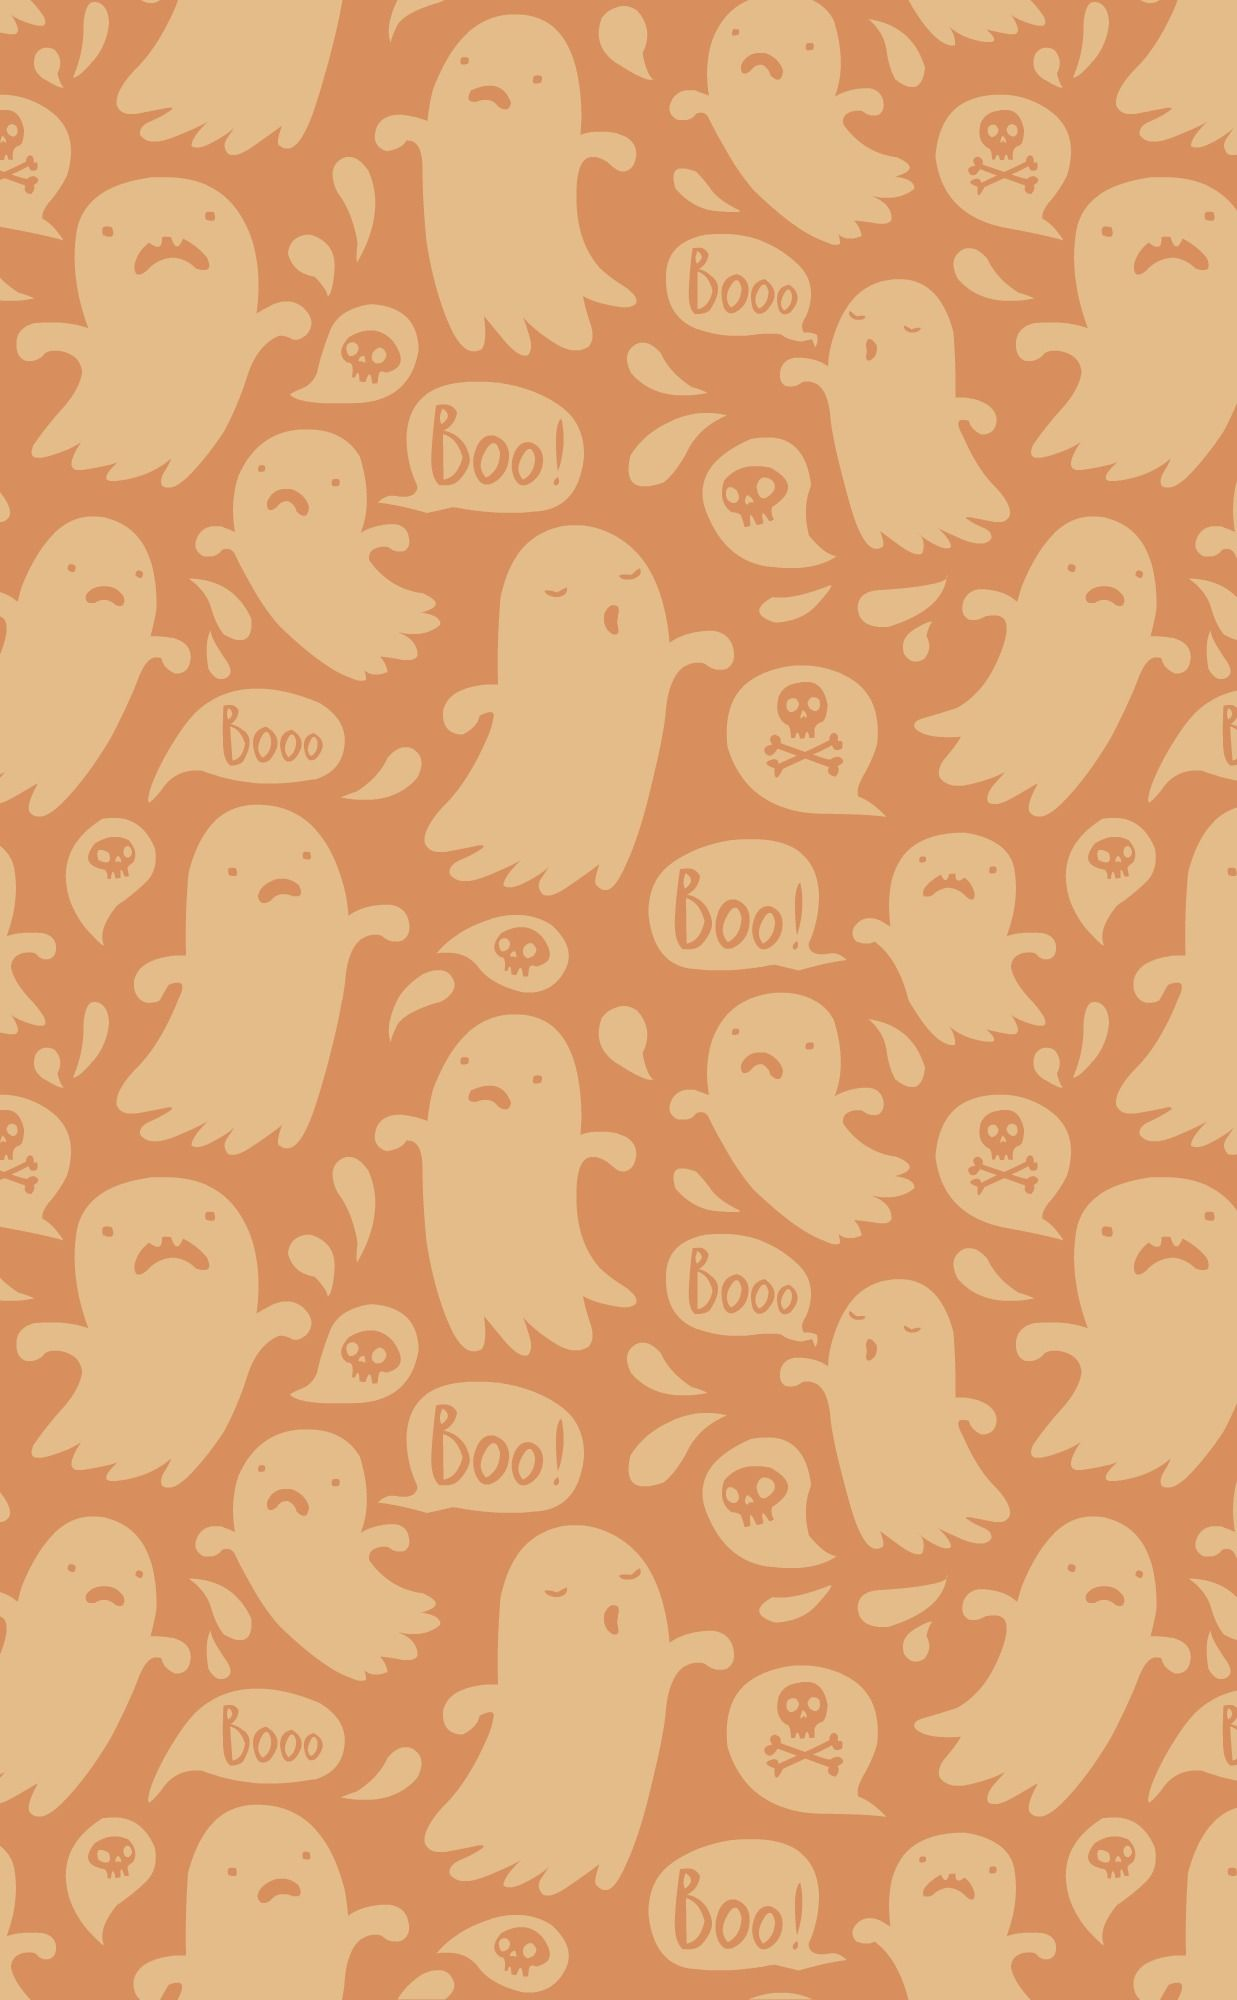 Pin By October Dreaming On Halloween Cell Phone Wallpaper Halloween Wallpaper Iphone Halloween Wallpaper Halloween Backgrounds